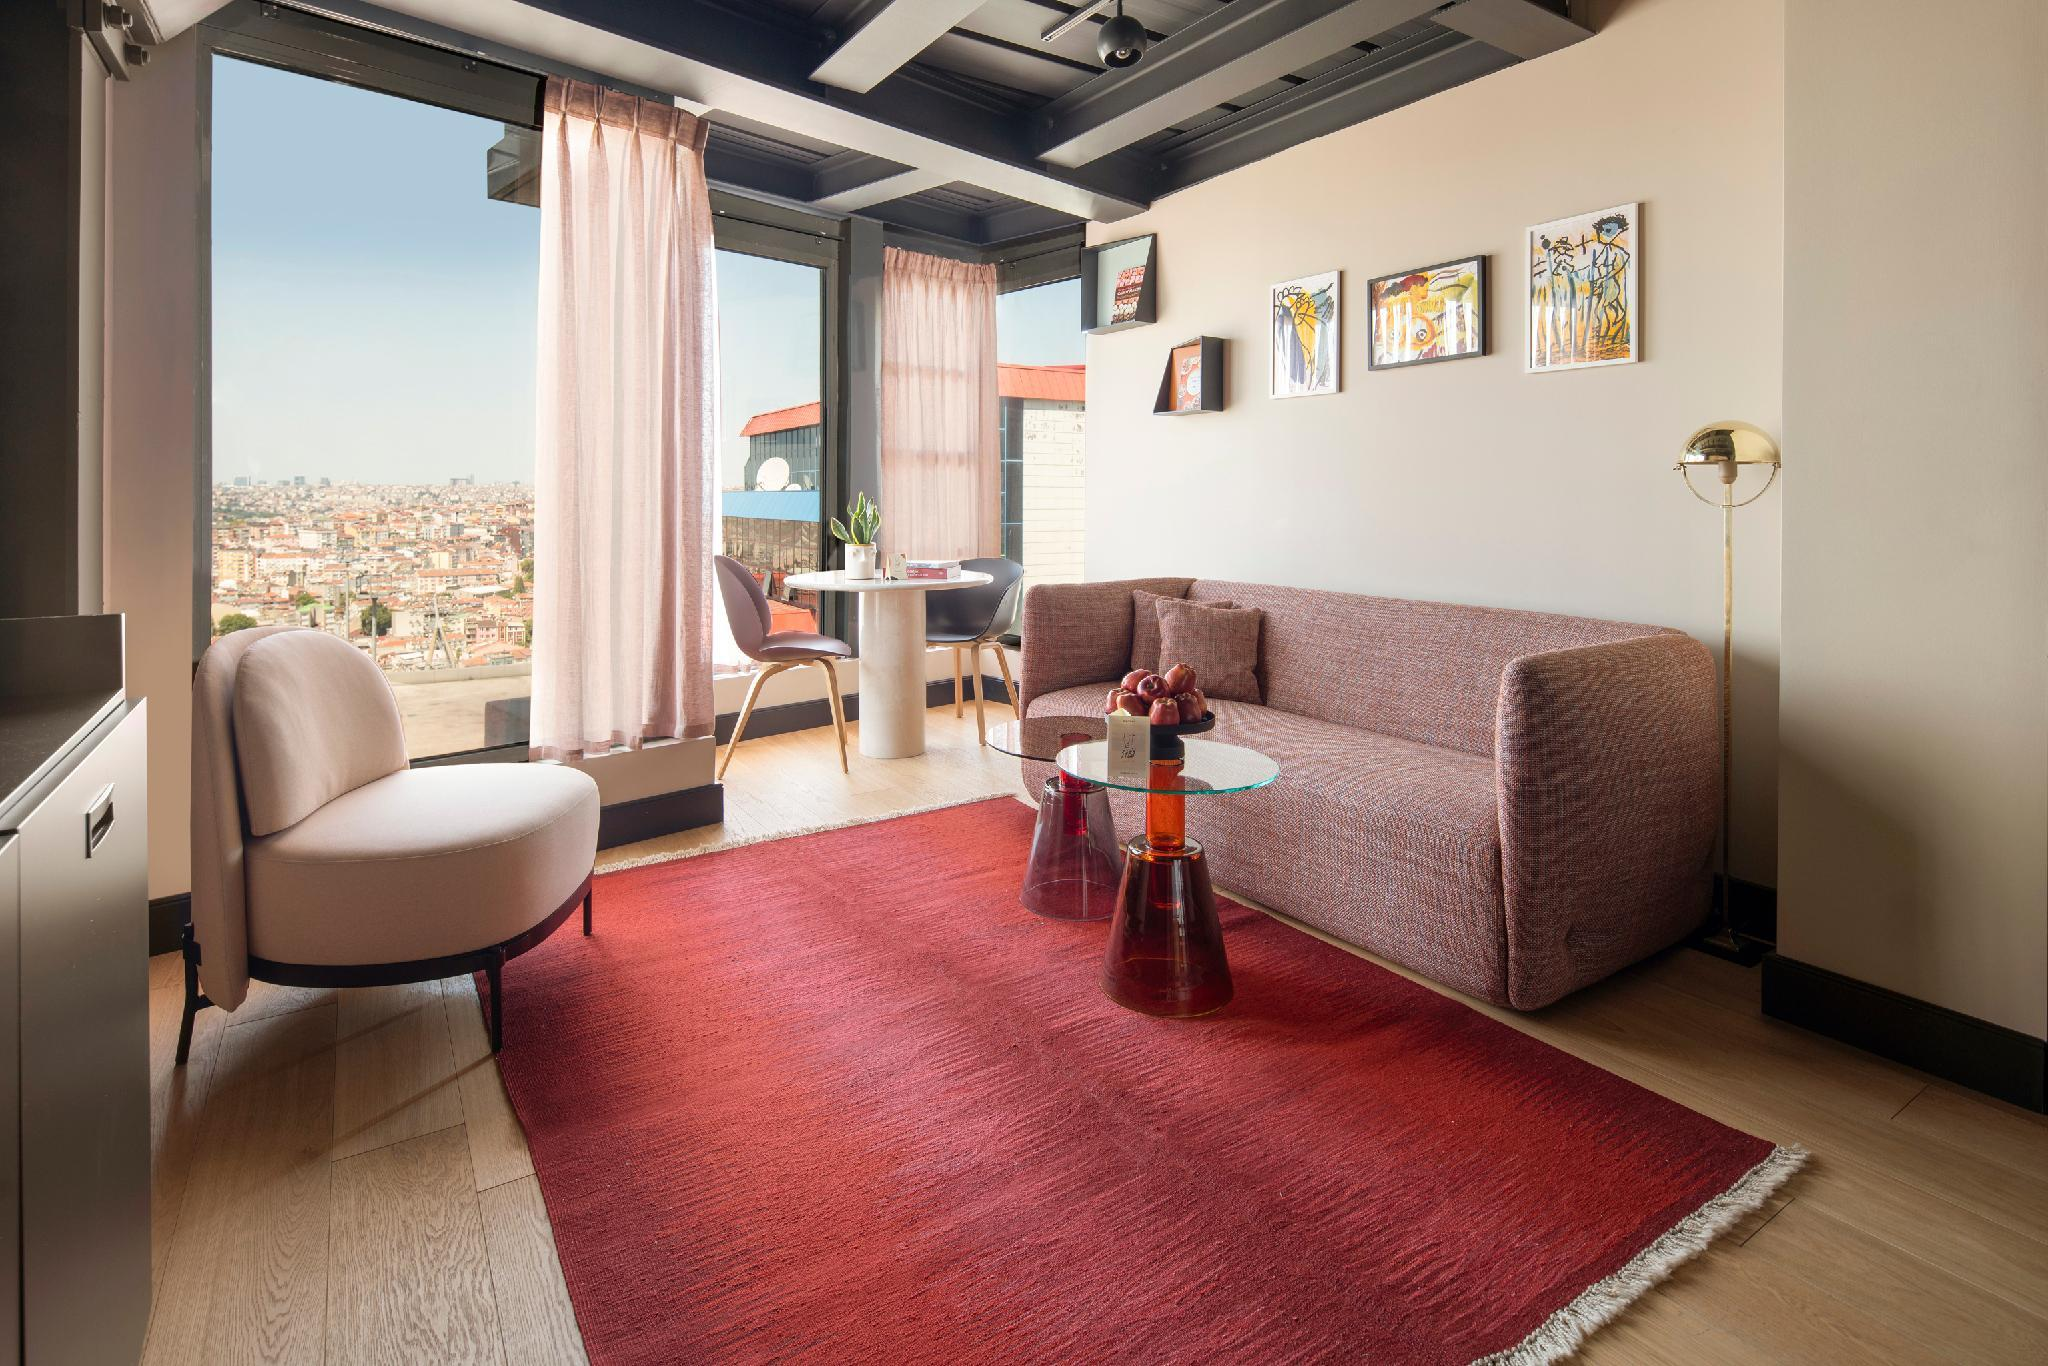 2 Bedroom Apartment With Iconic Golden Horn View